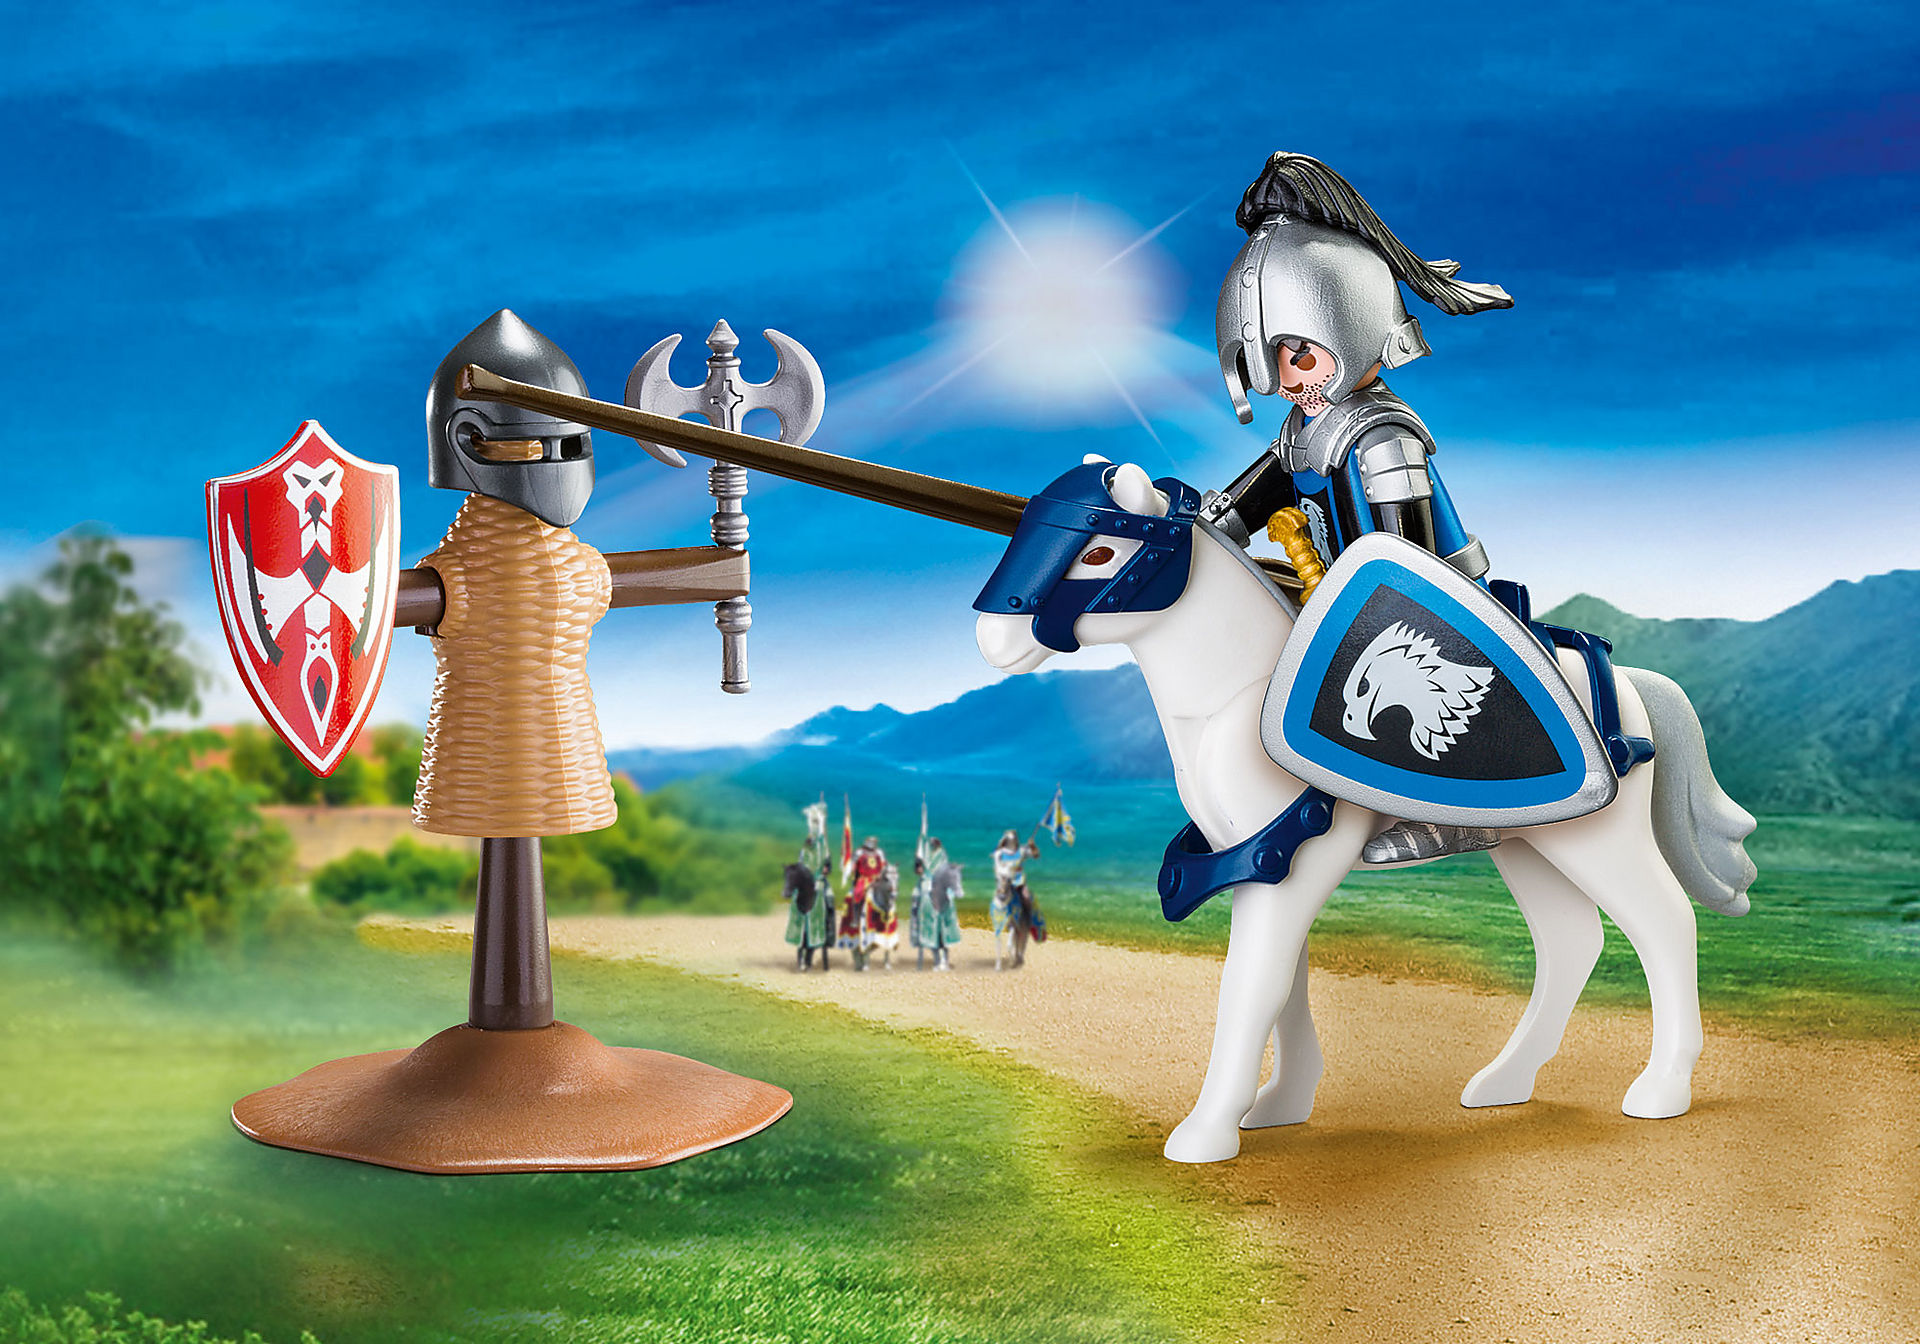 http://media.playmobil.com/i/playmobil/70106_product_detail/Valisette Chevalier et entrainement